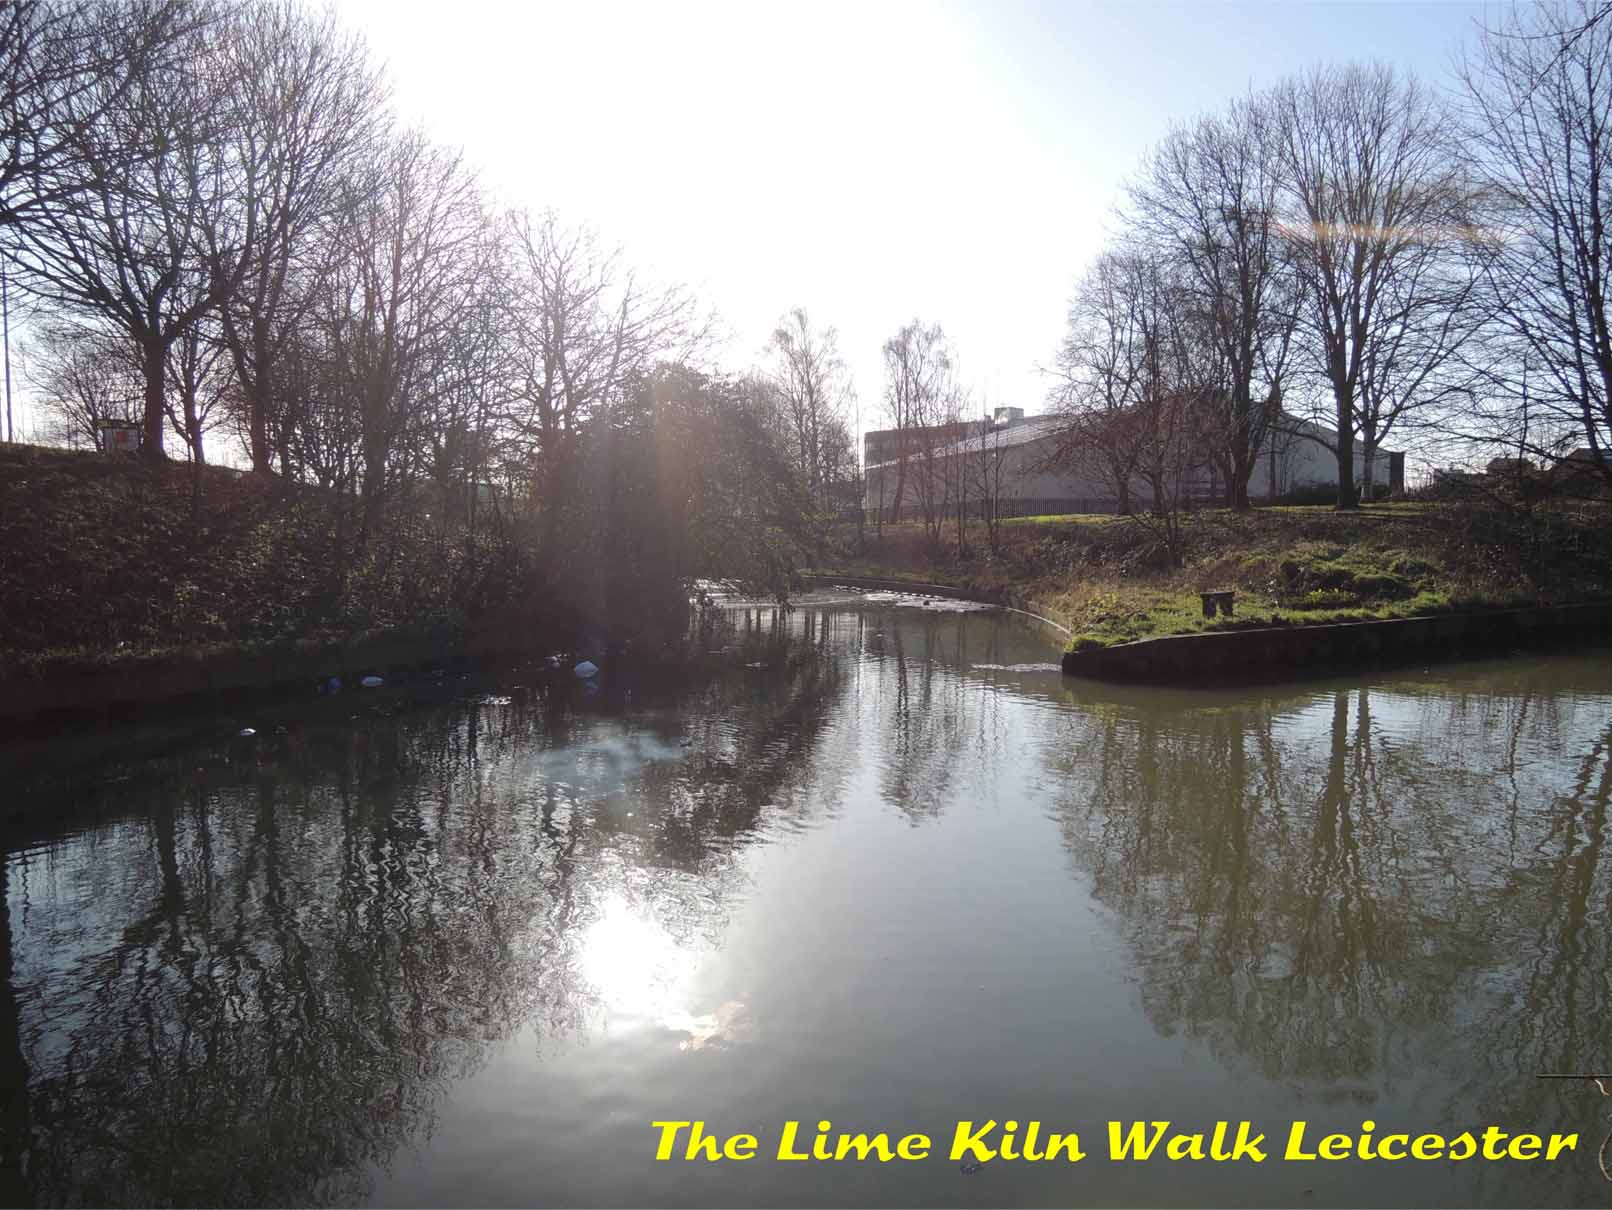 Beyond Lime Kiln Lock towards Belgrave